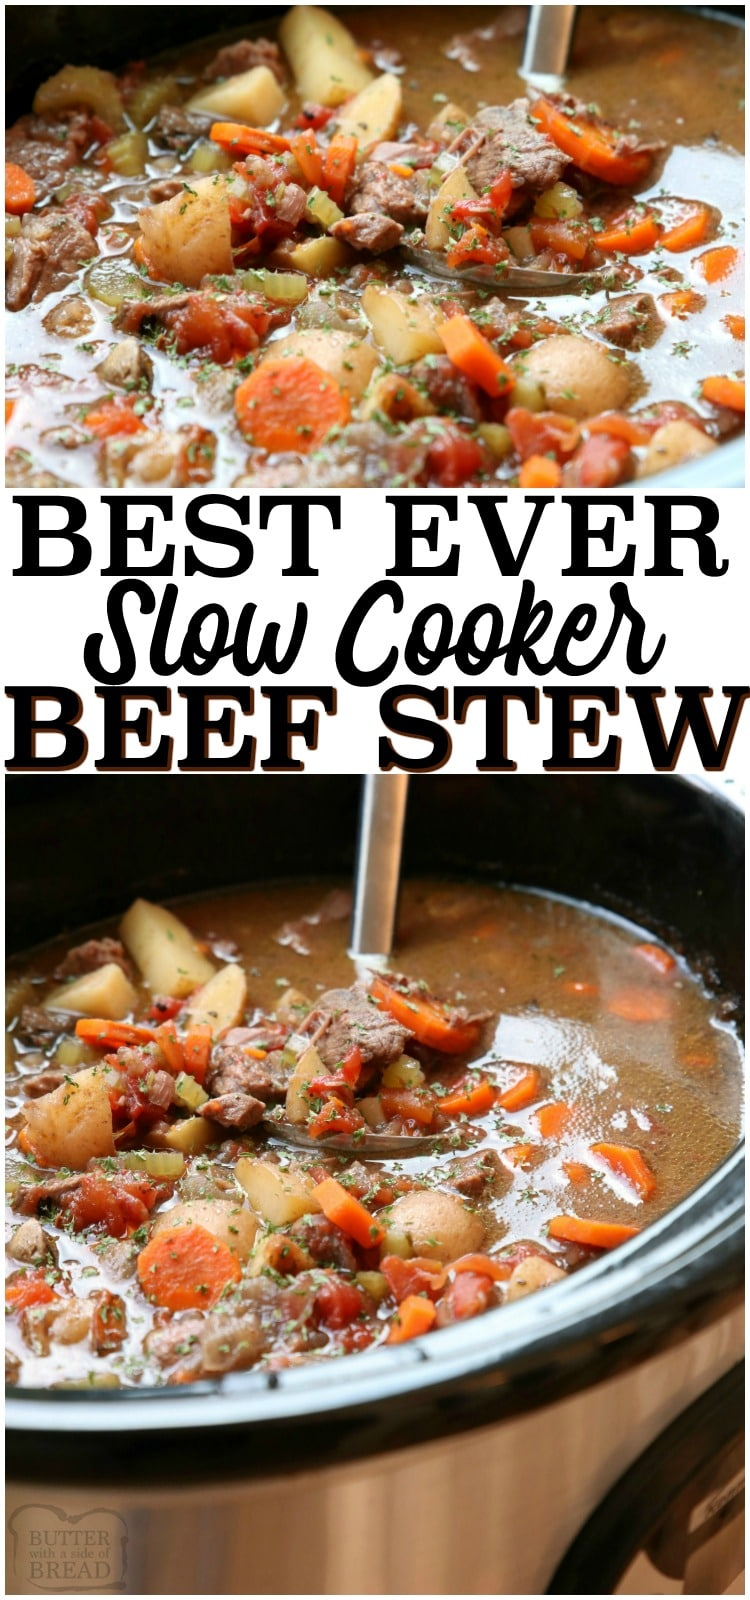 Best Crock Pot Beef Stew recipe made with tender chunks of beef, loads of vegetables and a simple mixture of broth and spices that yields incredible home style beef stew. Tips for making more flavorful stew & time saving ideas to make faster stew. #stew #beef #dinner #beefstew #crockpot #slowcooker #recipe from BUTTER WITH A SIDE OF BREAD